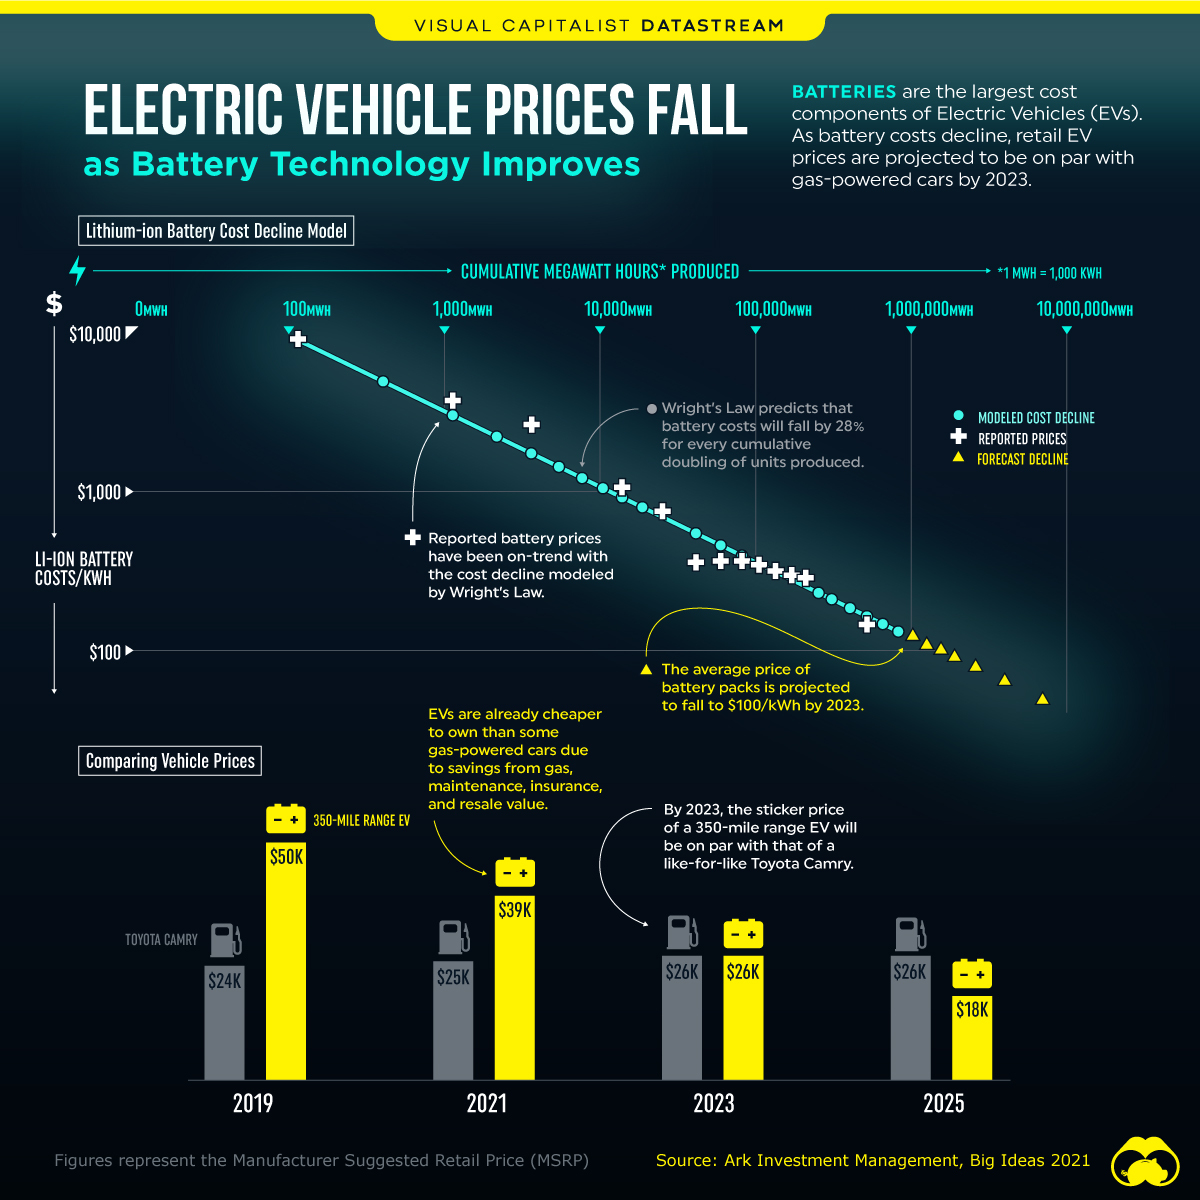 Electric Vehicle Prices Fall as Battery Technology Improves